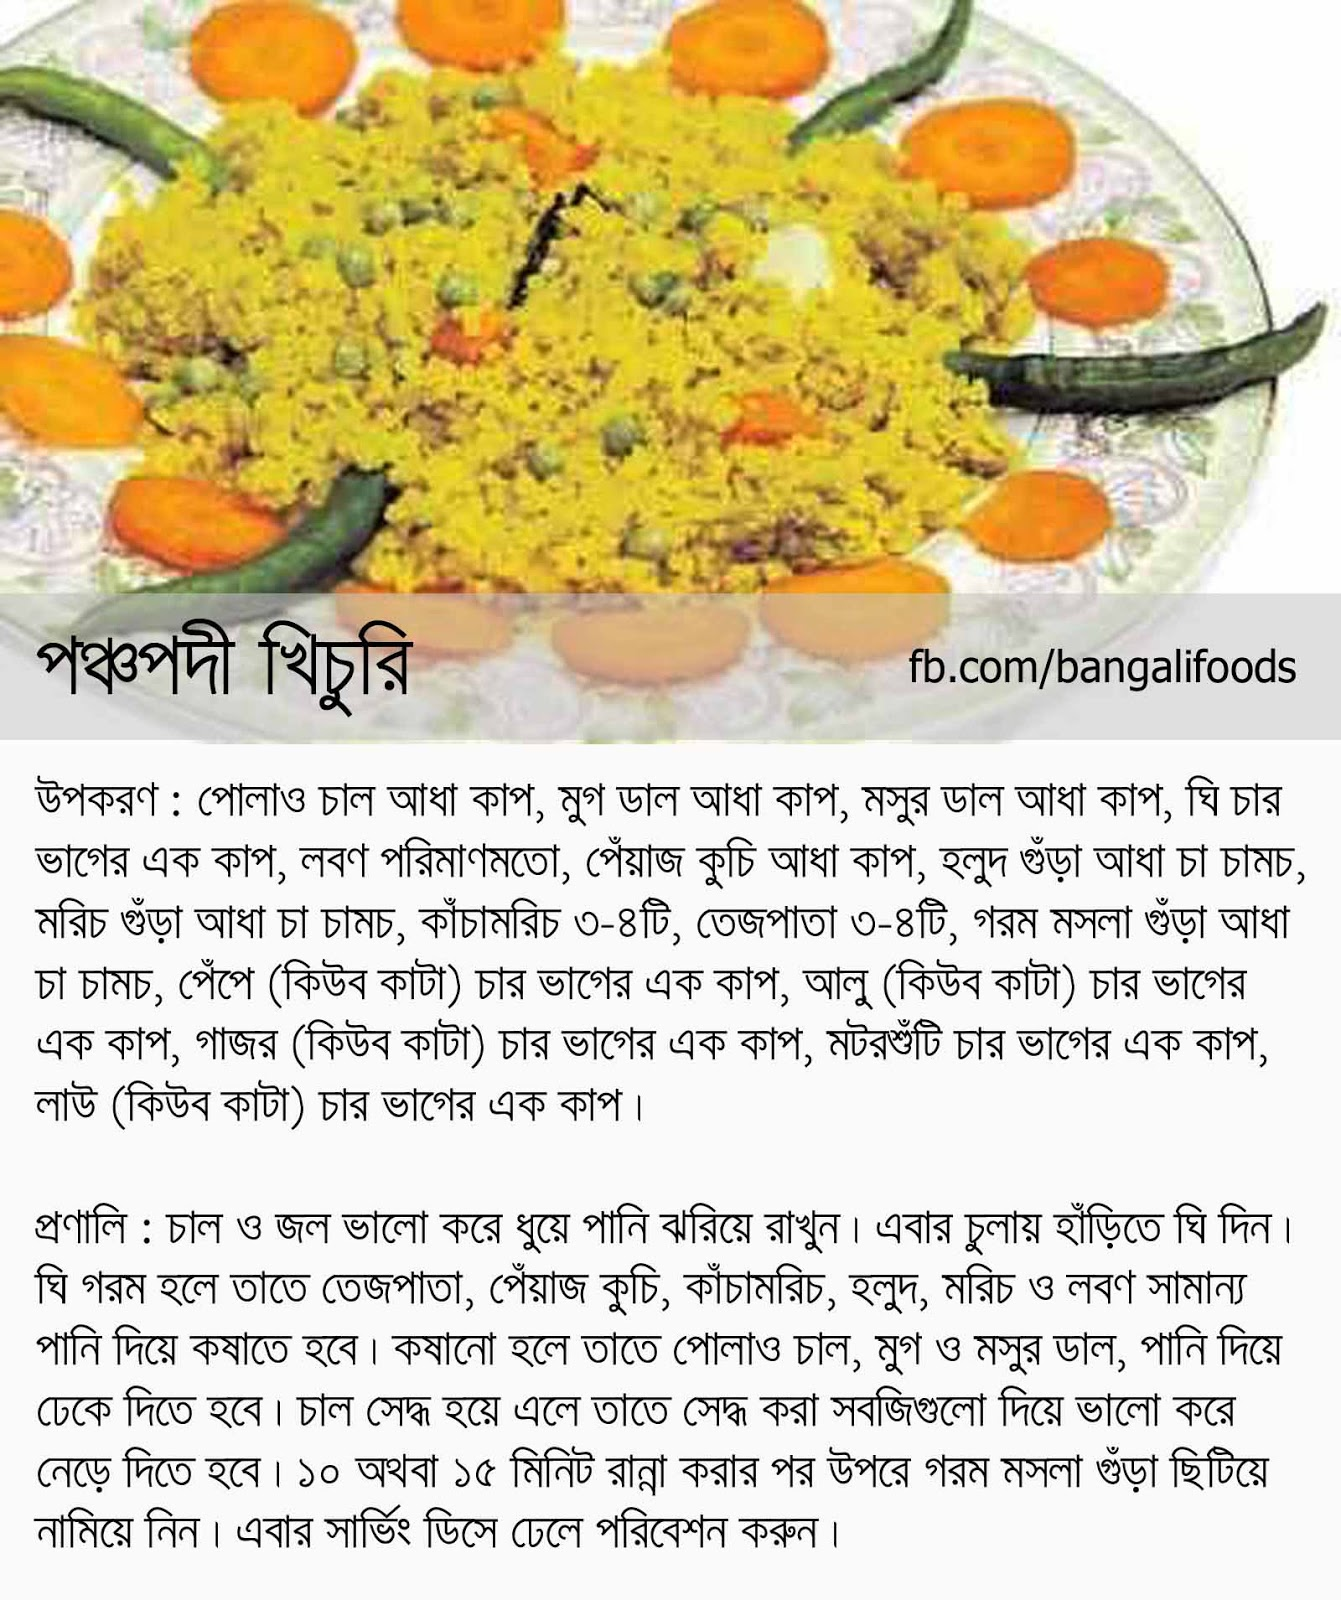 Bangali foods some khichuri recipes in bangla ponchopodi khichuri forumfinder Gallery